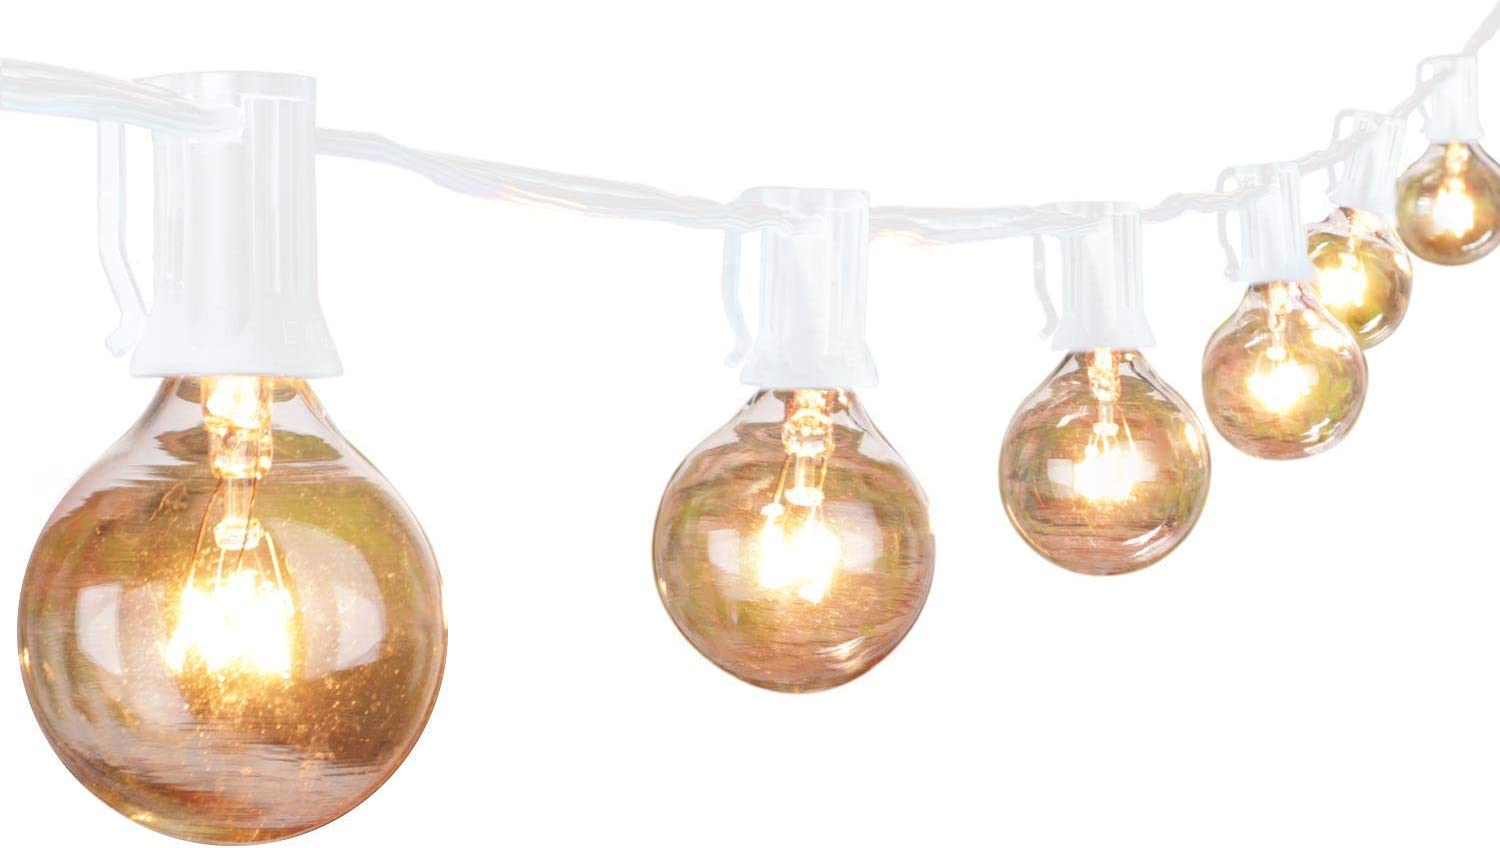 Brightown Outdoor String Light-25Ft G40 Globe Patio Lights with 26 Edison Glass Bulbs(1 Spare), Waterproof Connectable Hanging Light for Backyard Porch Balcony Deck Party Decor, E12 Socket Base, White